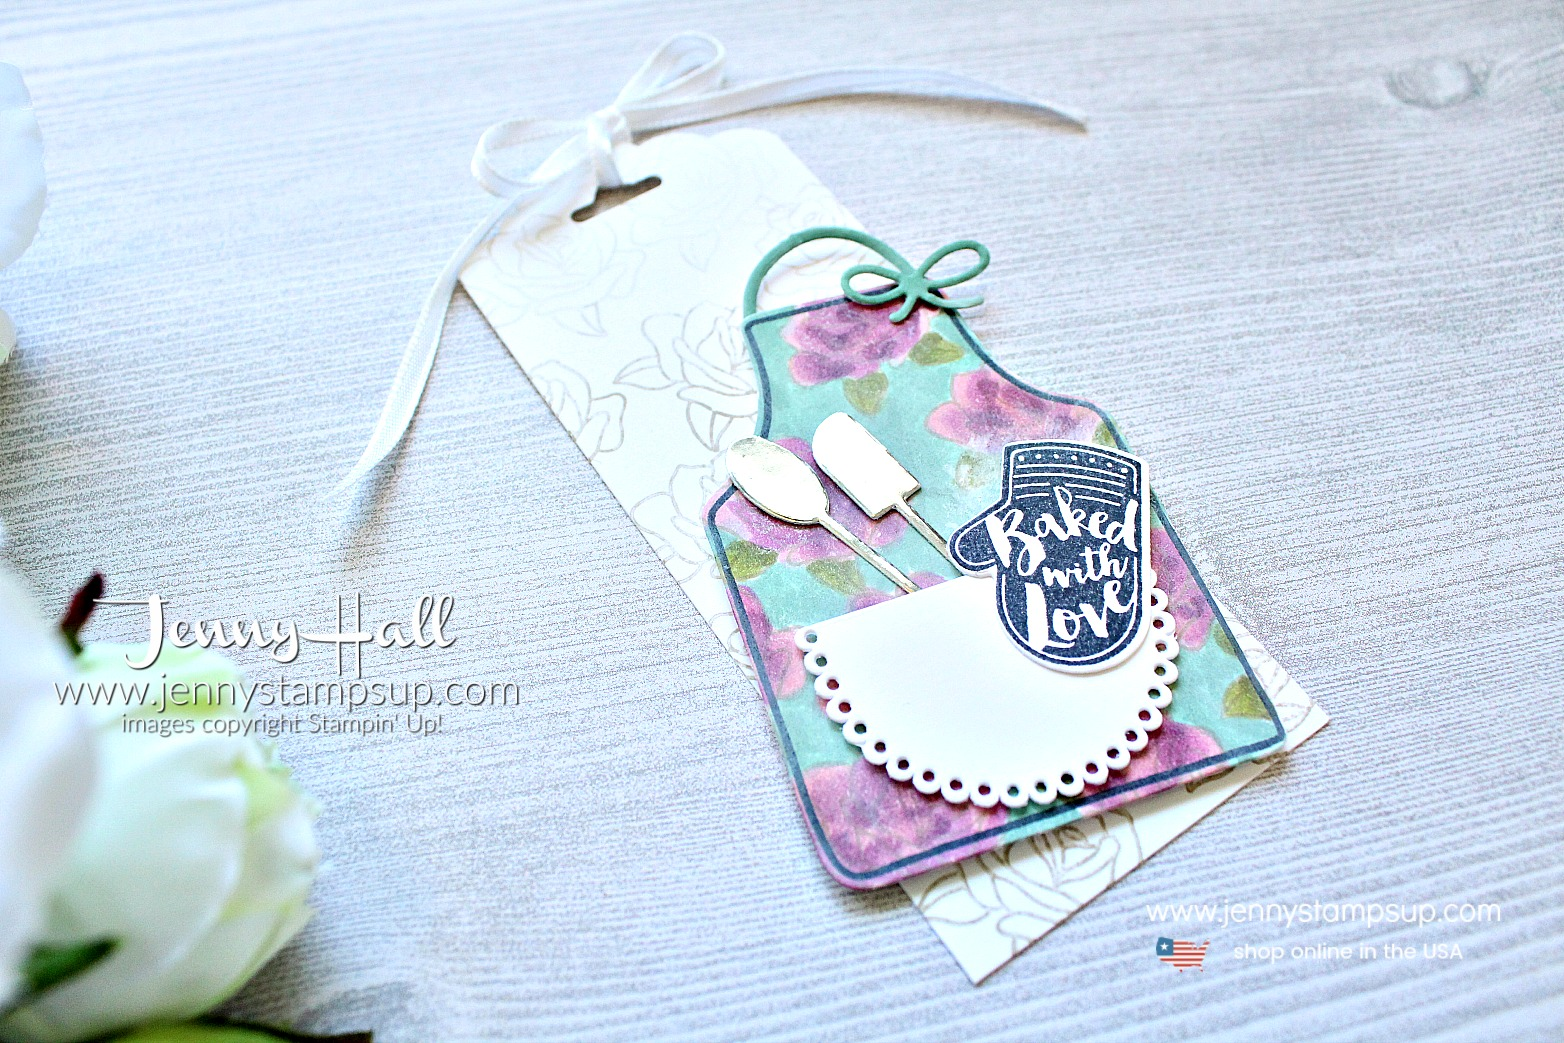 Apron of Love gift tag and box created by Jenny Hall at www.jennyhalldesign.com for #stamping #cardmaking #diy #crafts #craftsforkids #apronoflove #giftpackaging #giftbox #wwyschallenge #stampinup #jennyhall #jennyhalldesign #jennyhallstampinup #jennystampsup #youtuber #tutorial #lifestyle #mothersdaygift